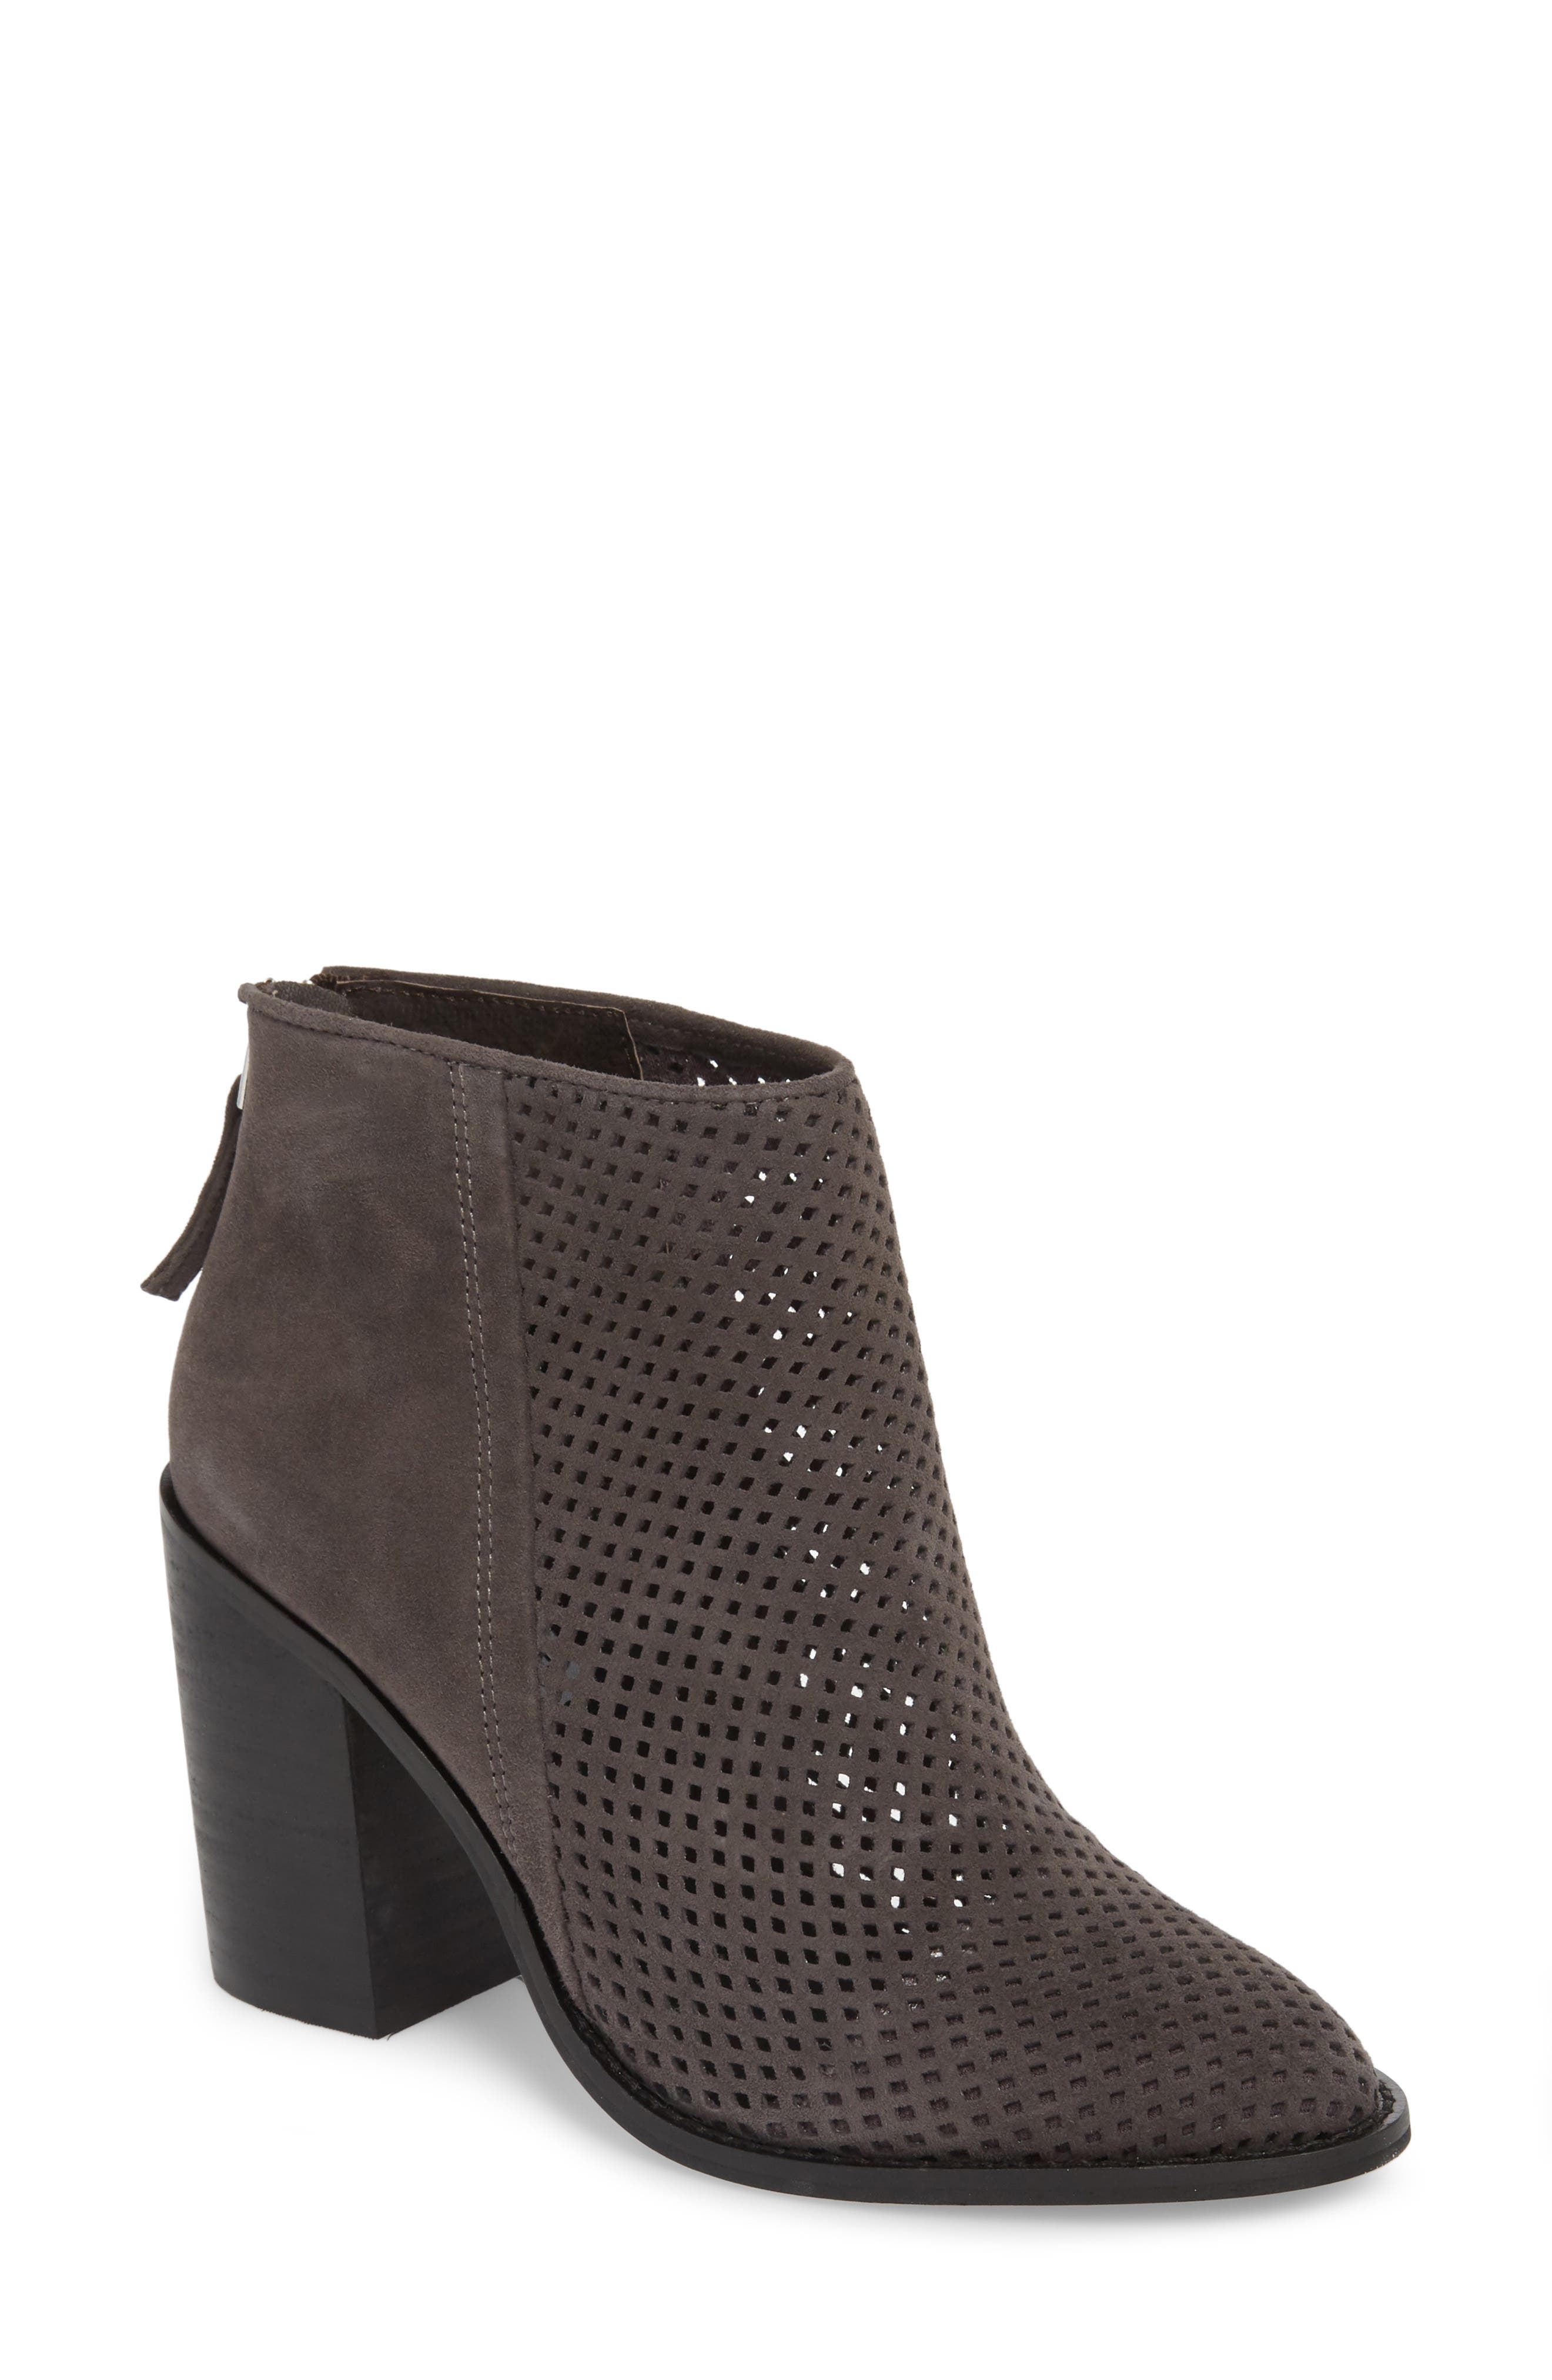 Steve Madden Rumble Perforated Bootie, Black